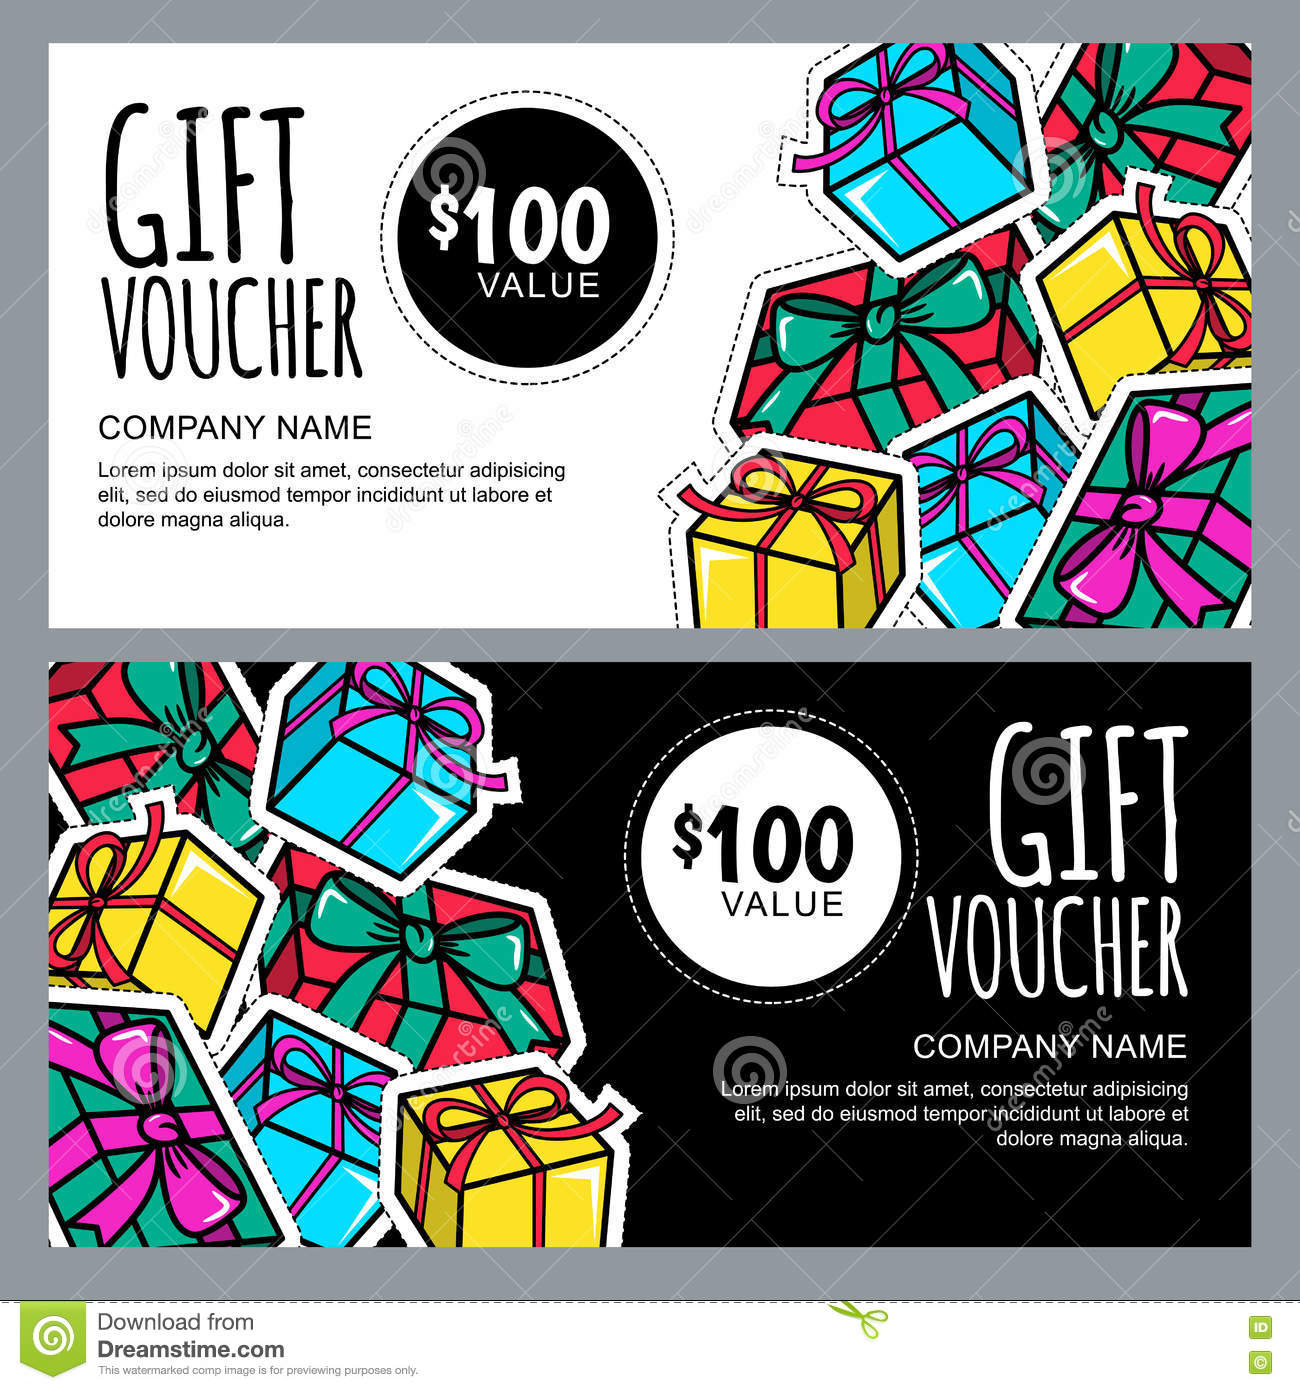 Vector Gift Voucher Template With Gift Box Patches And Stickers Vector Gift Voucher  Template Gift Box Patches Stickers Christmas New Year Holidays Cards S S ...  Fun Voucher Template